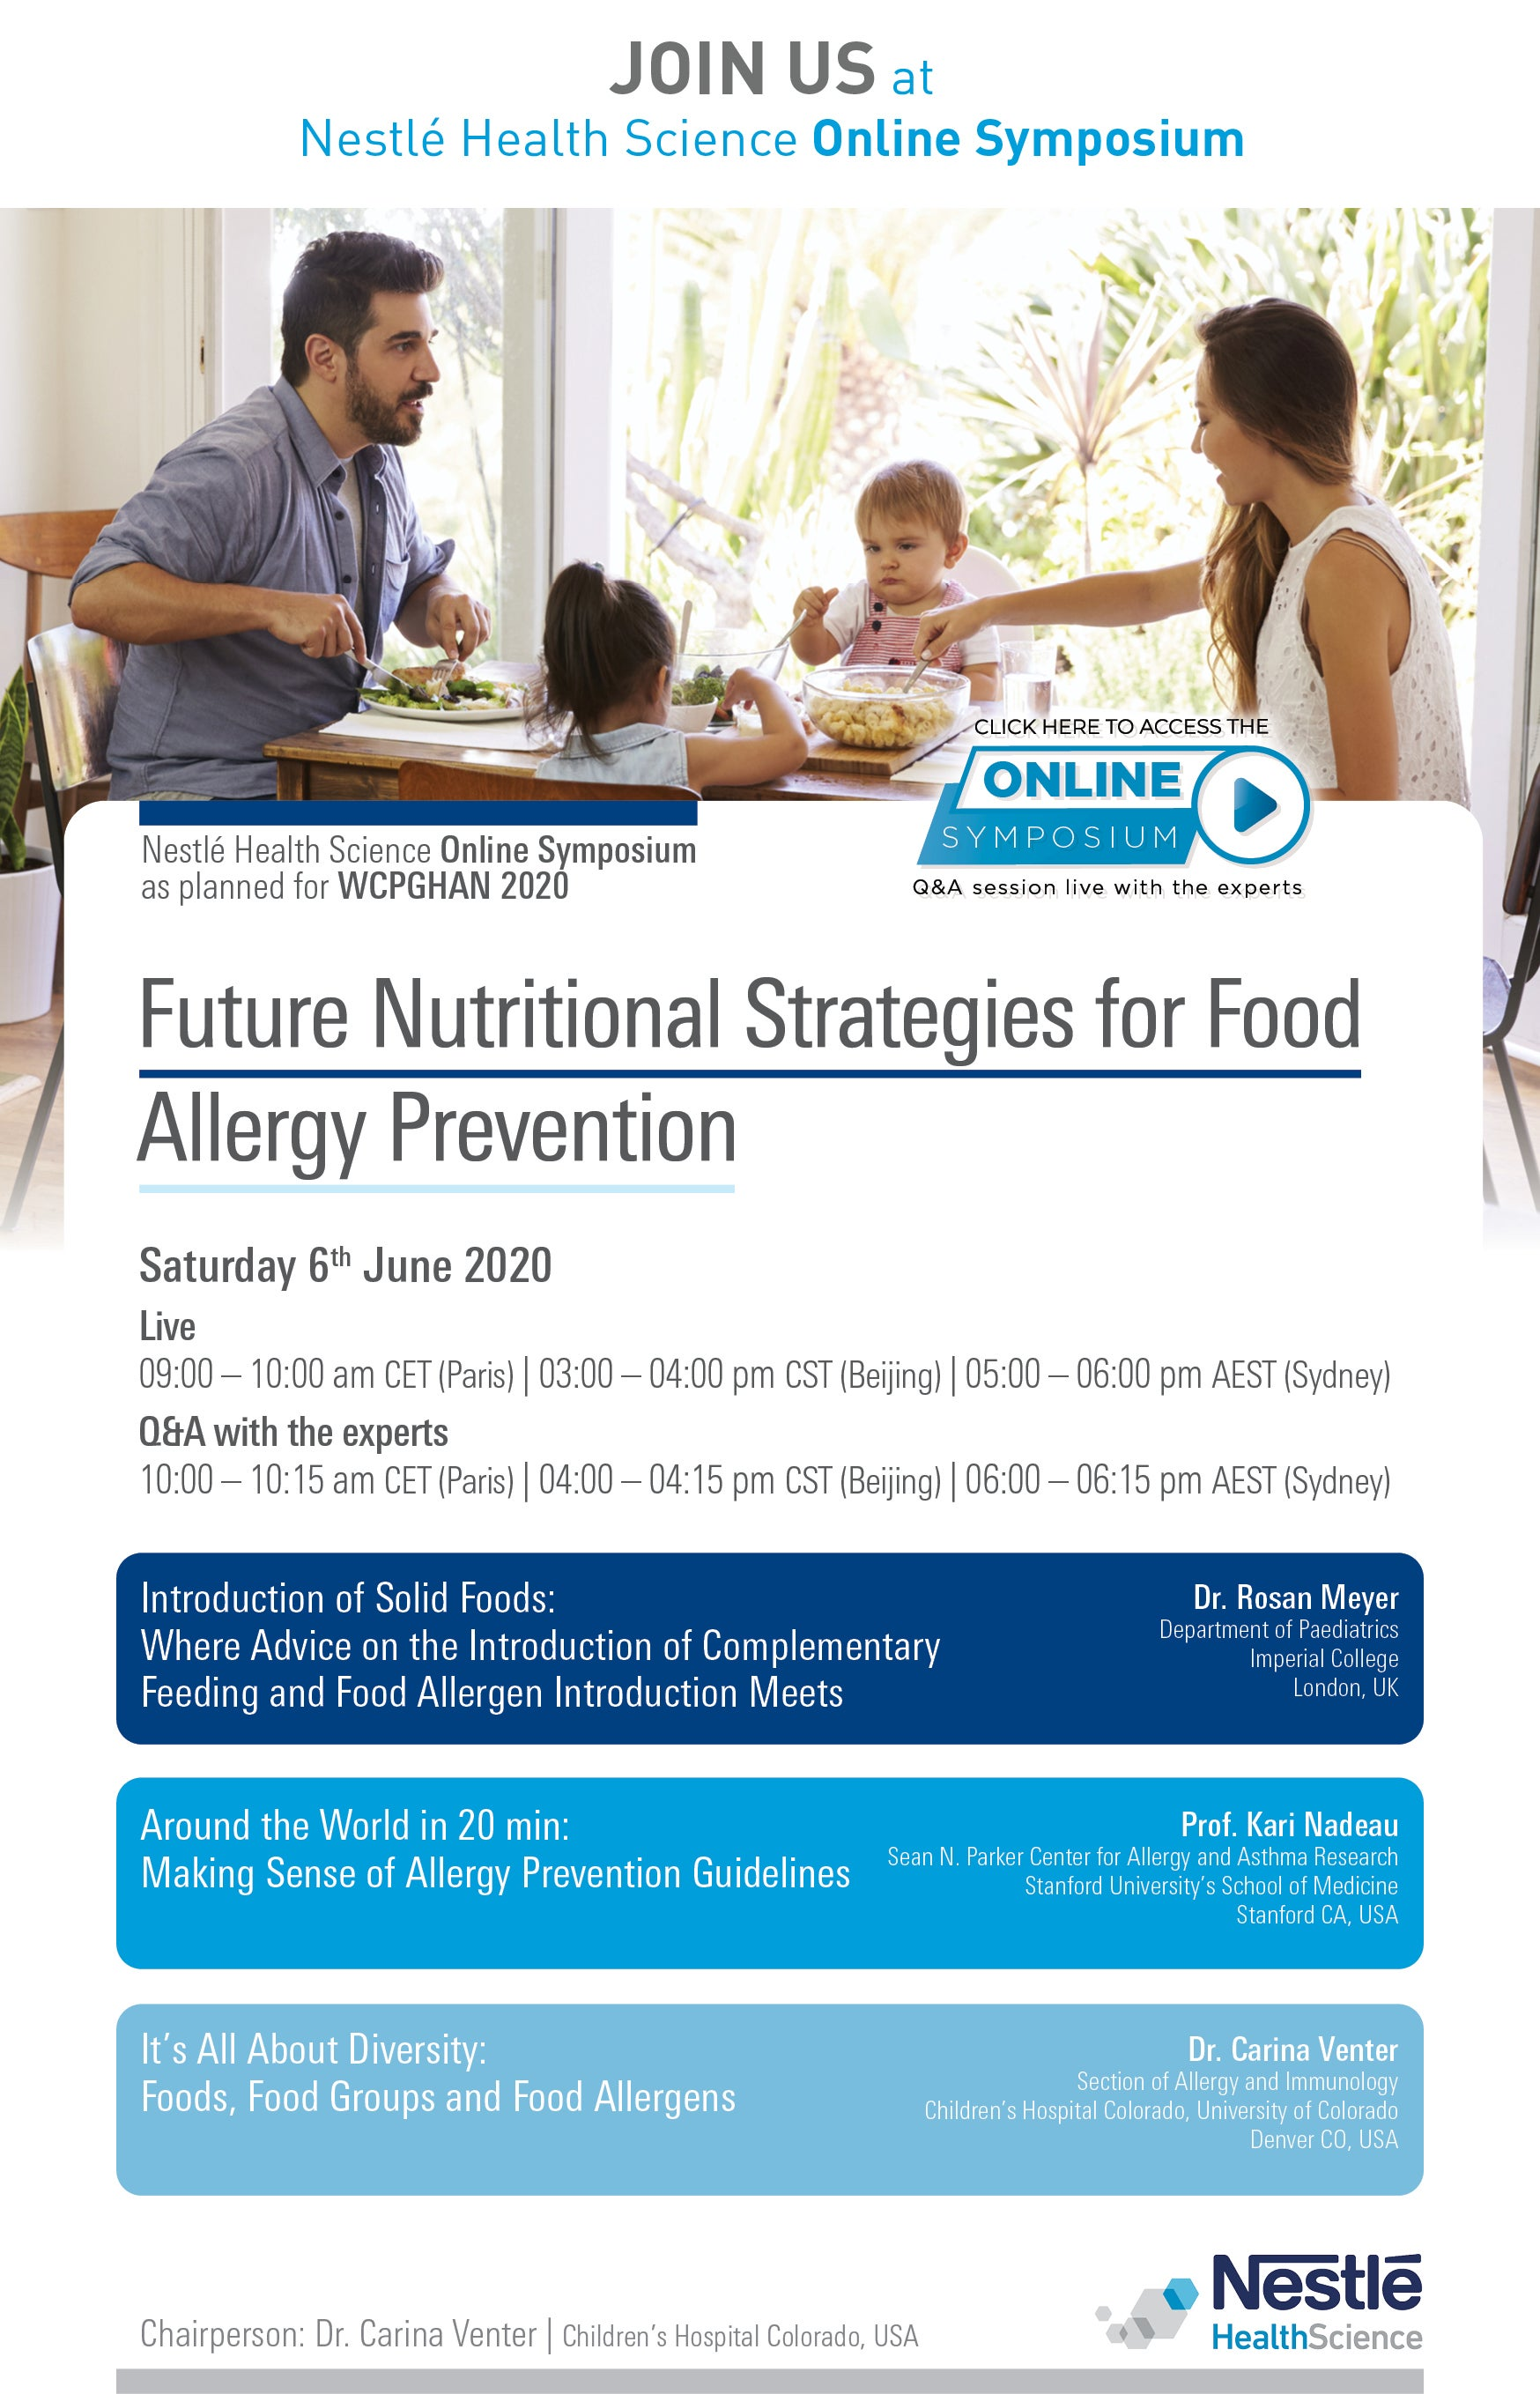 NHSc online symposium – Future Nutritional Strategies for Food Allergy Prevention